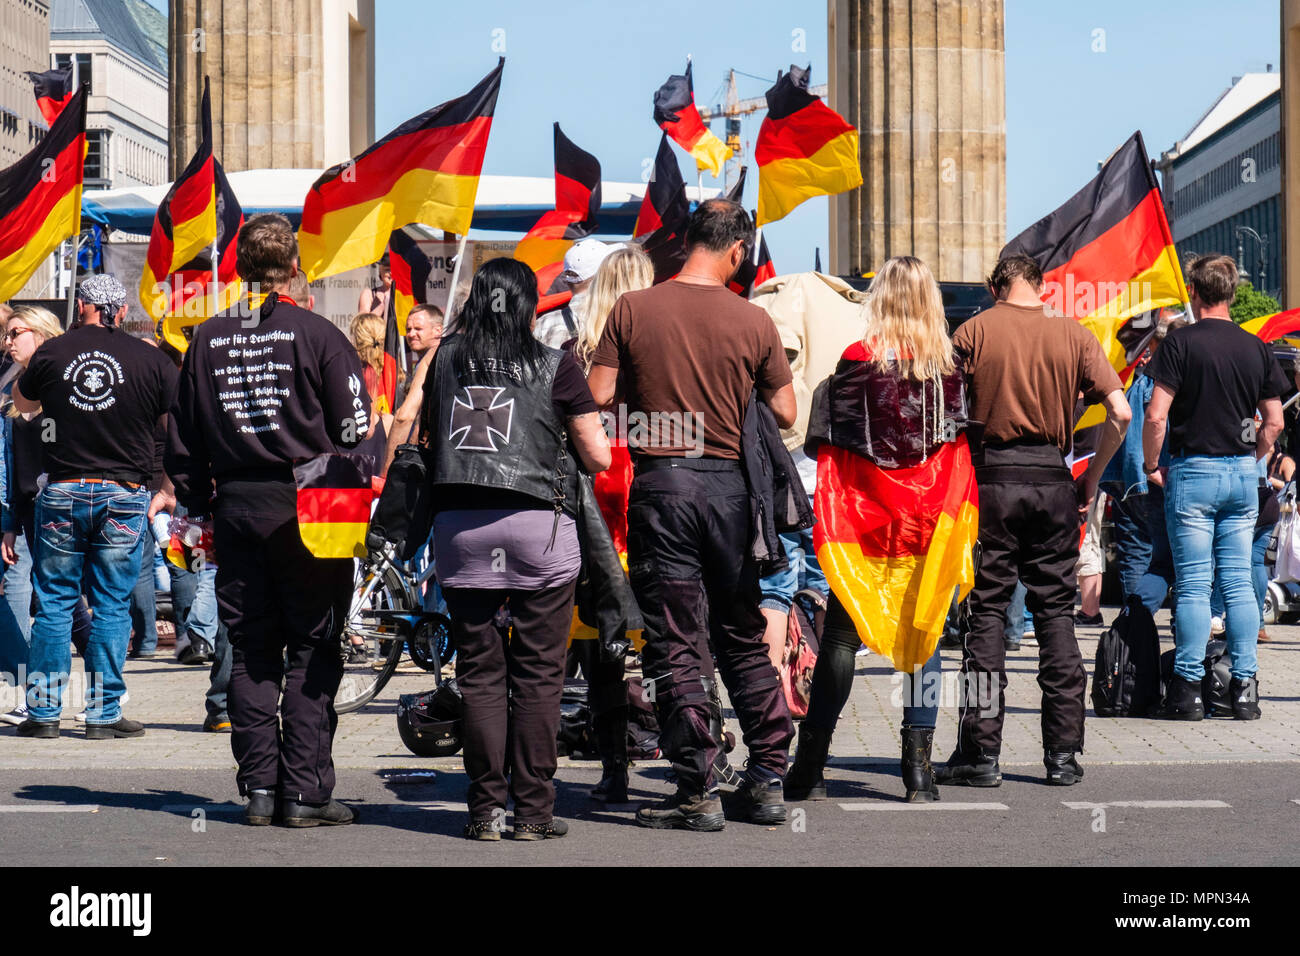 Berlin Mitte, Hundreds of Bikers protest at the Brandenburg Gate for protection of Women, Children and Old People in Germany. Right wing rally - Stock Image